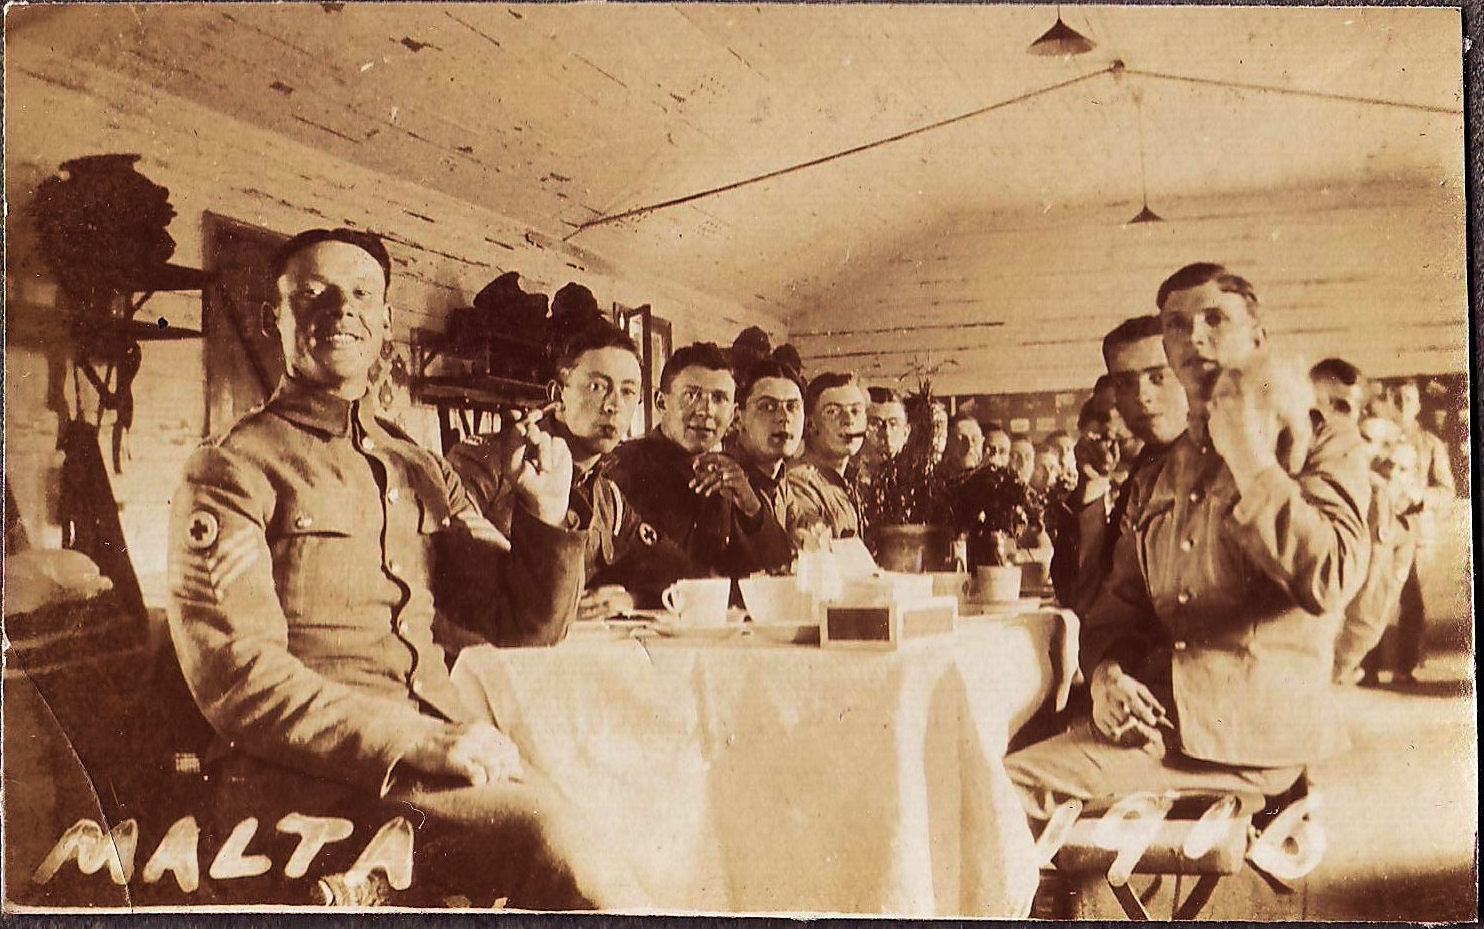 The Royal Army Medical Corps